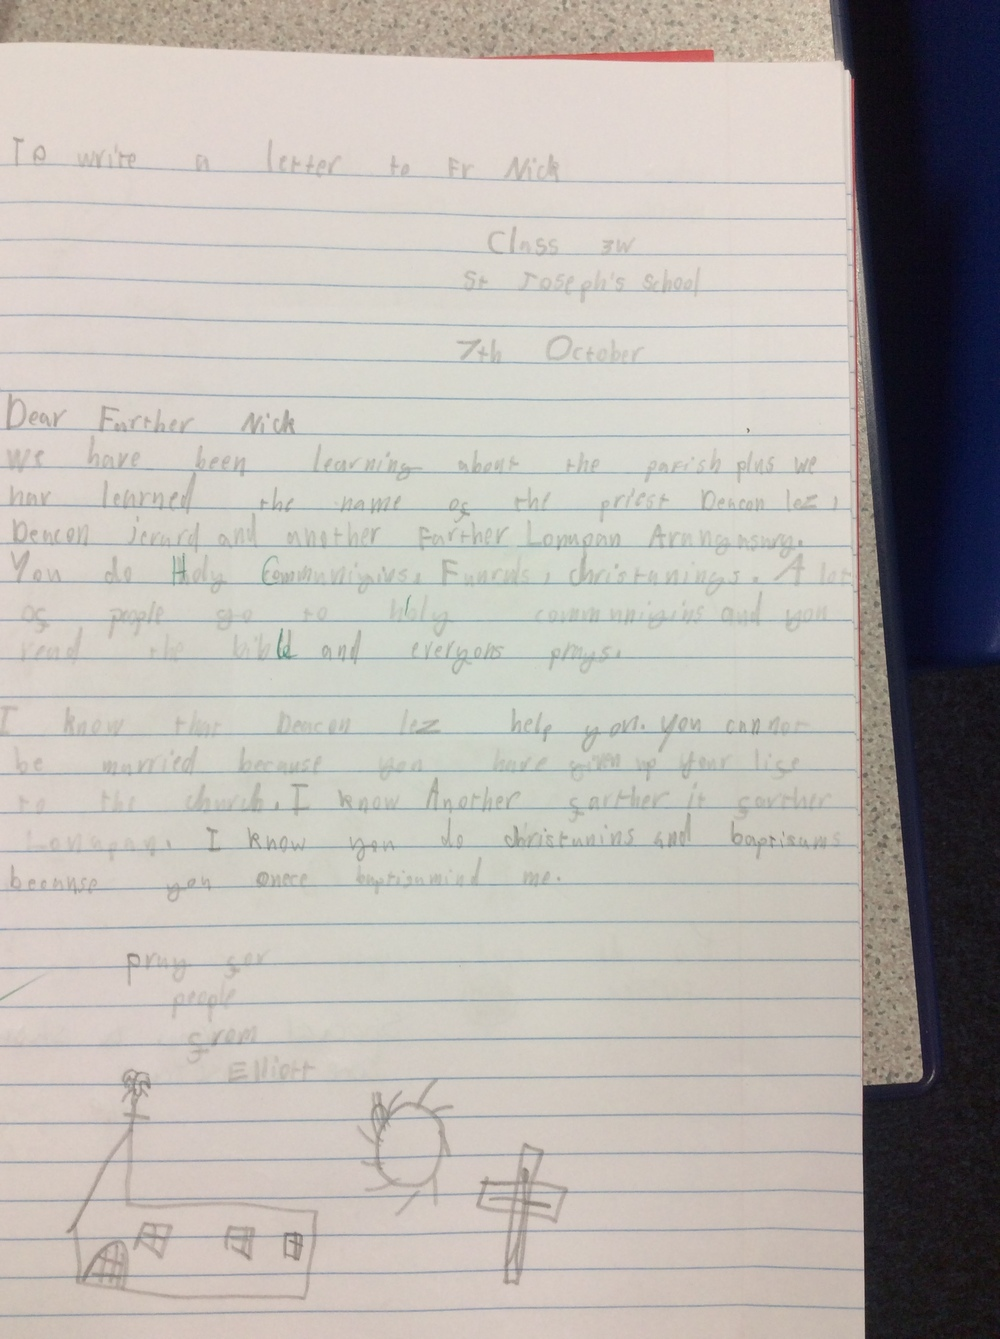 A letter in RE